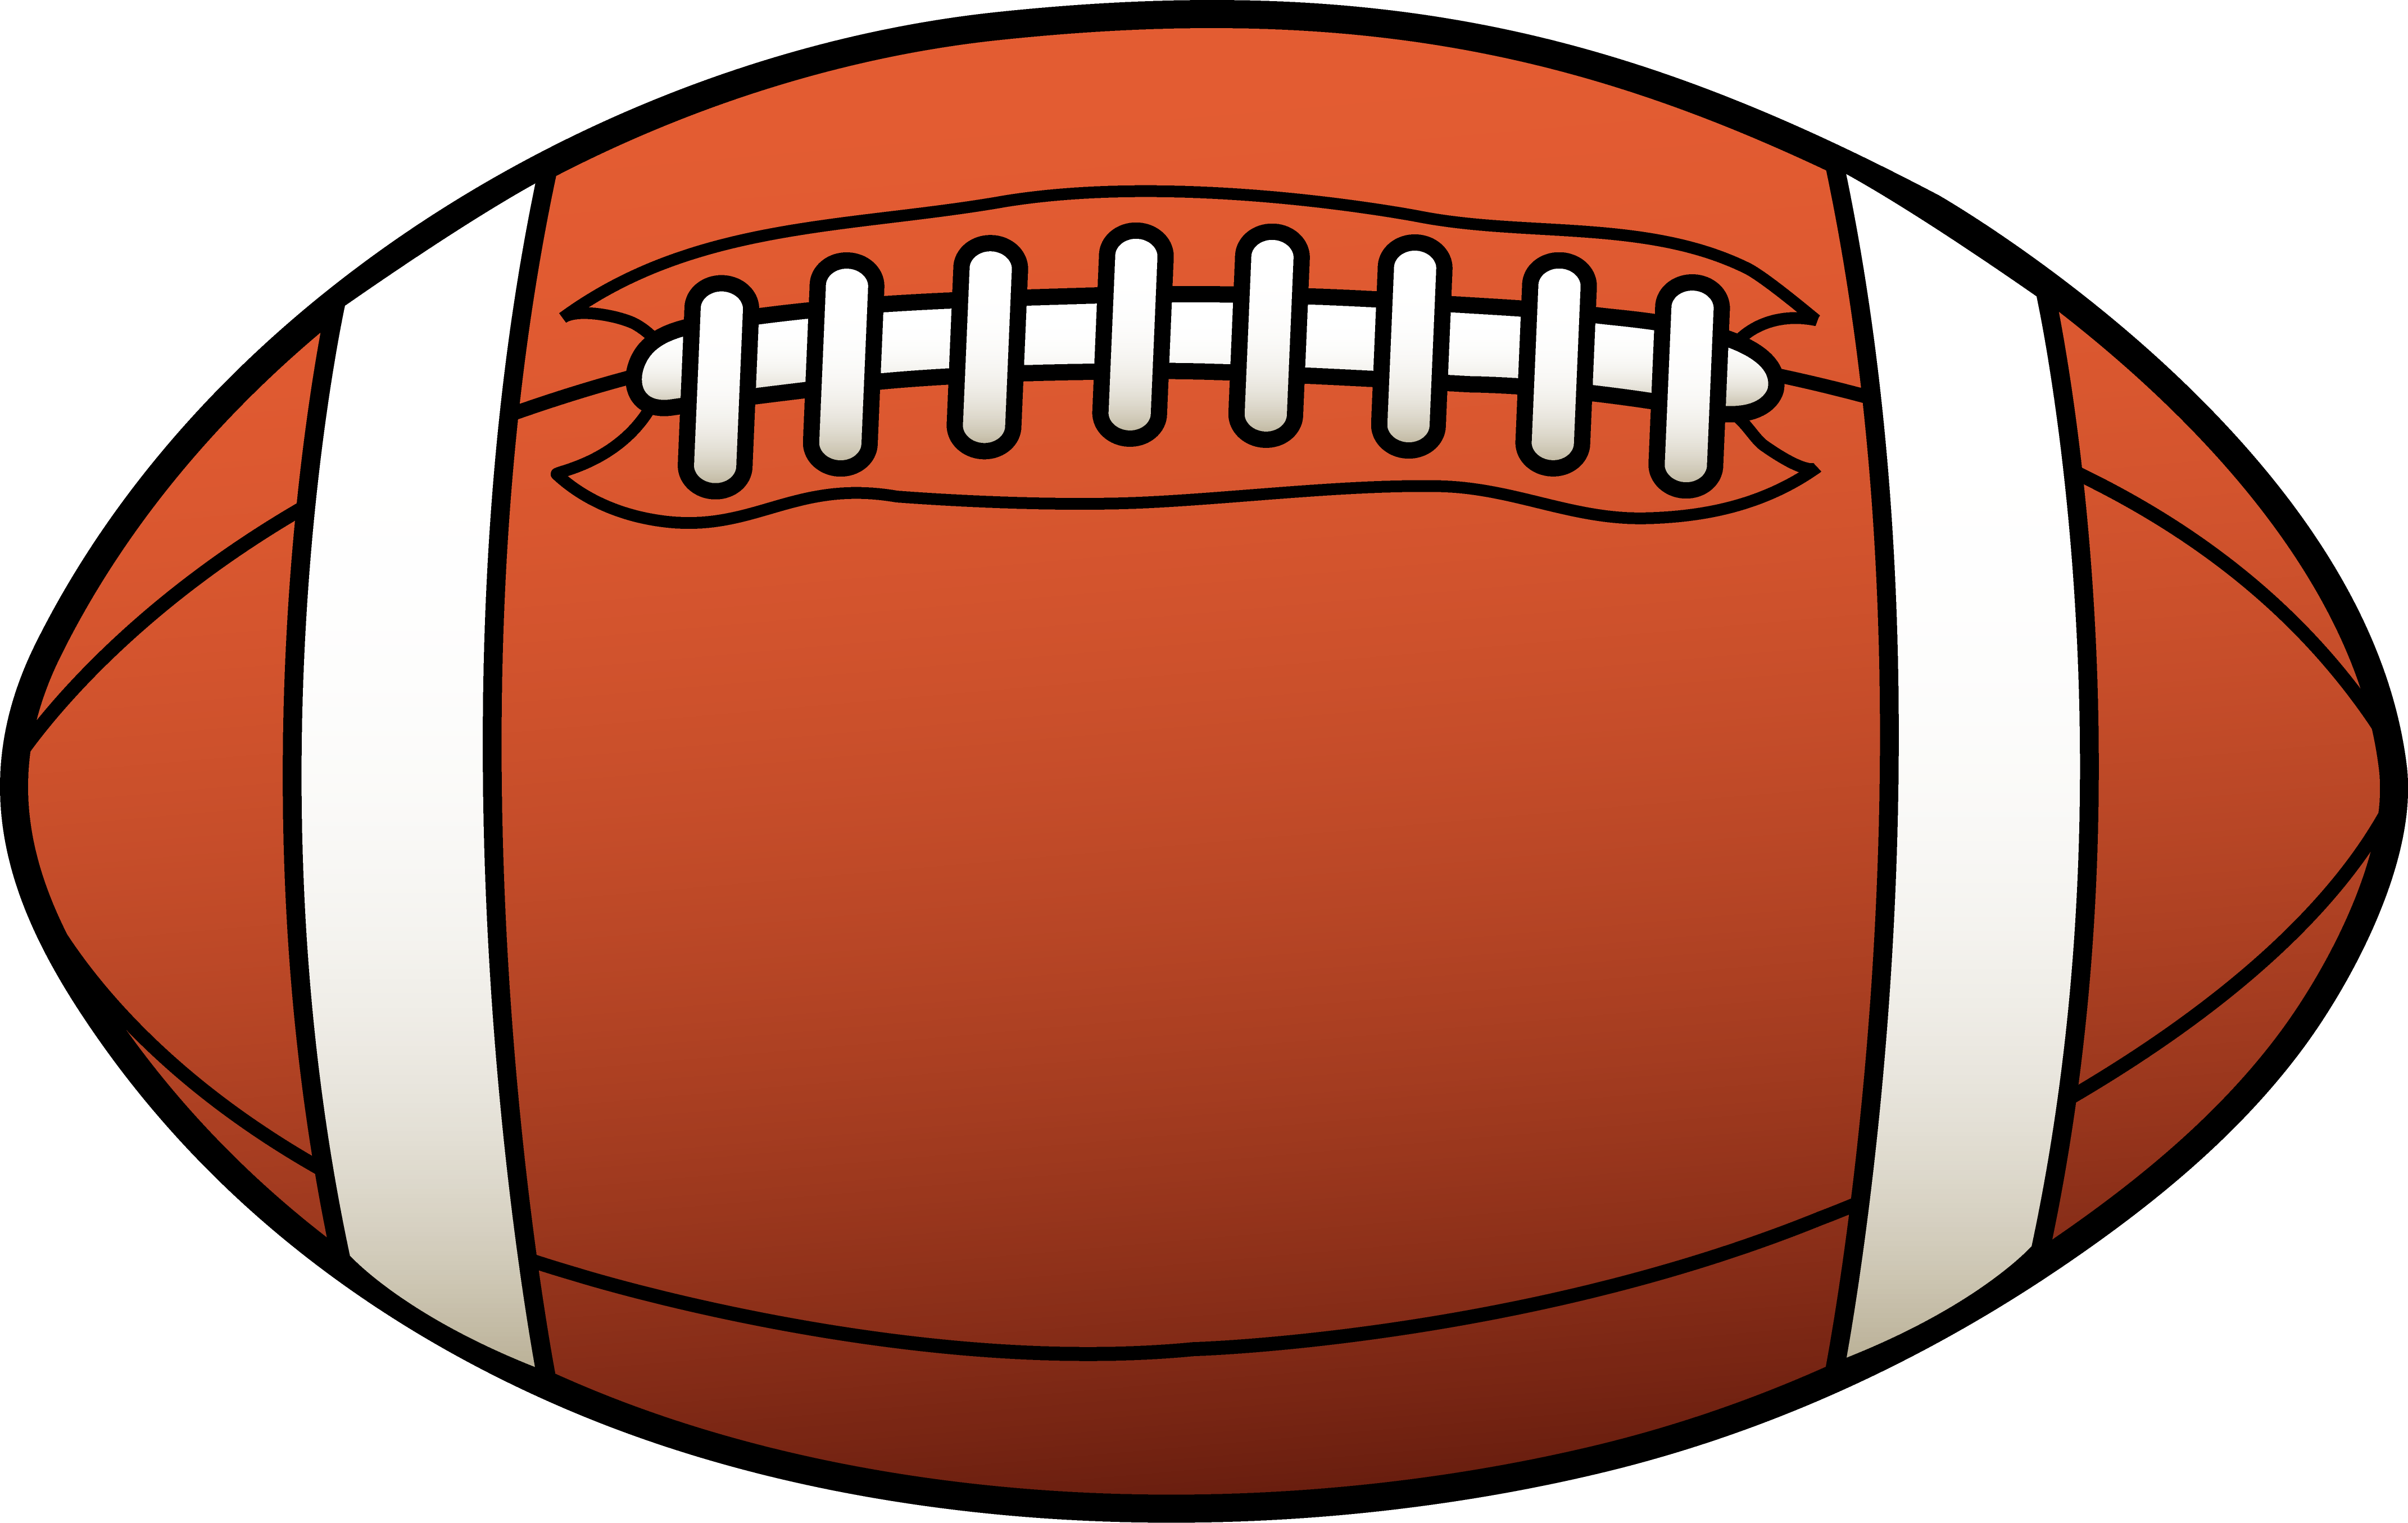 Free images clip arts. Football theme clipart